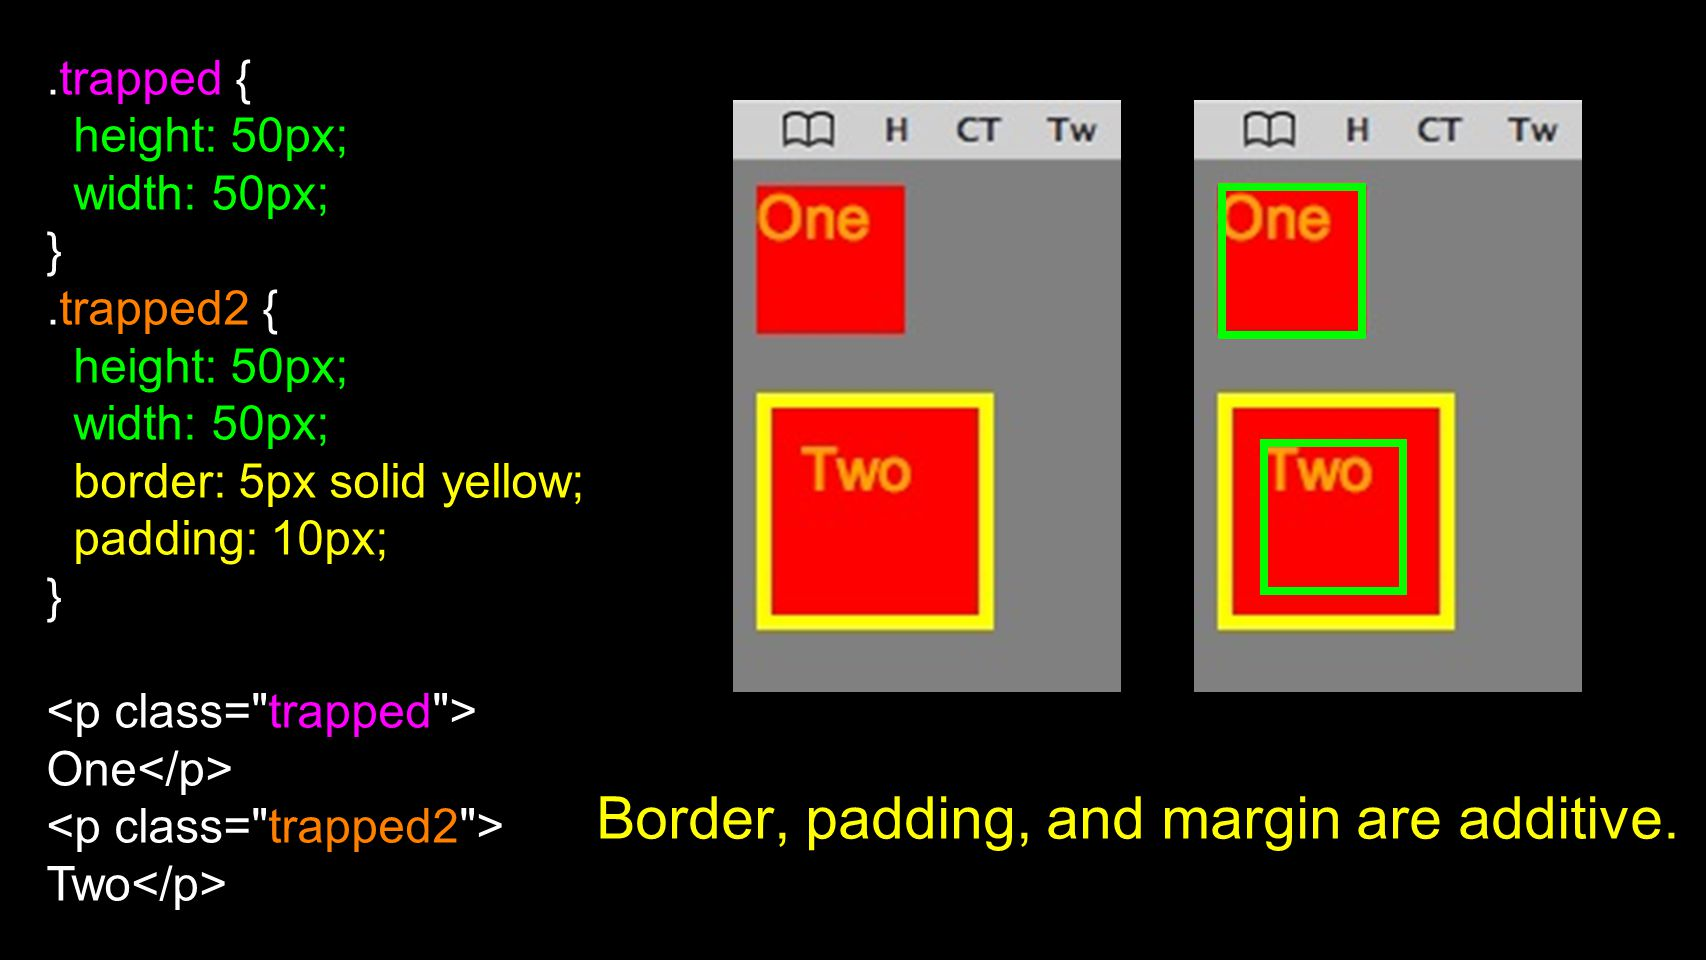 Border, padding, and margin are additive..trapped { height: 50px; width: 50px; }.trapped2 { height: 50px; width: 50px; border: 5px solid yellow; padding: 10px; } One Two